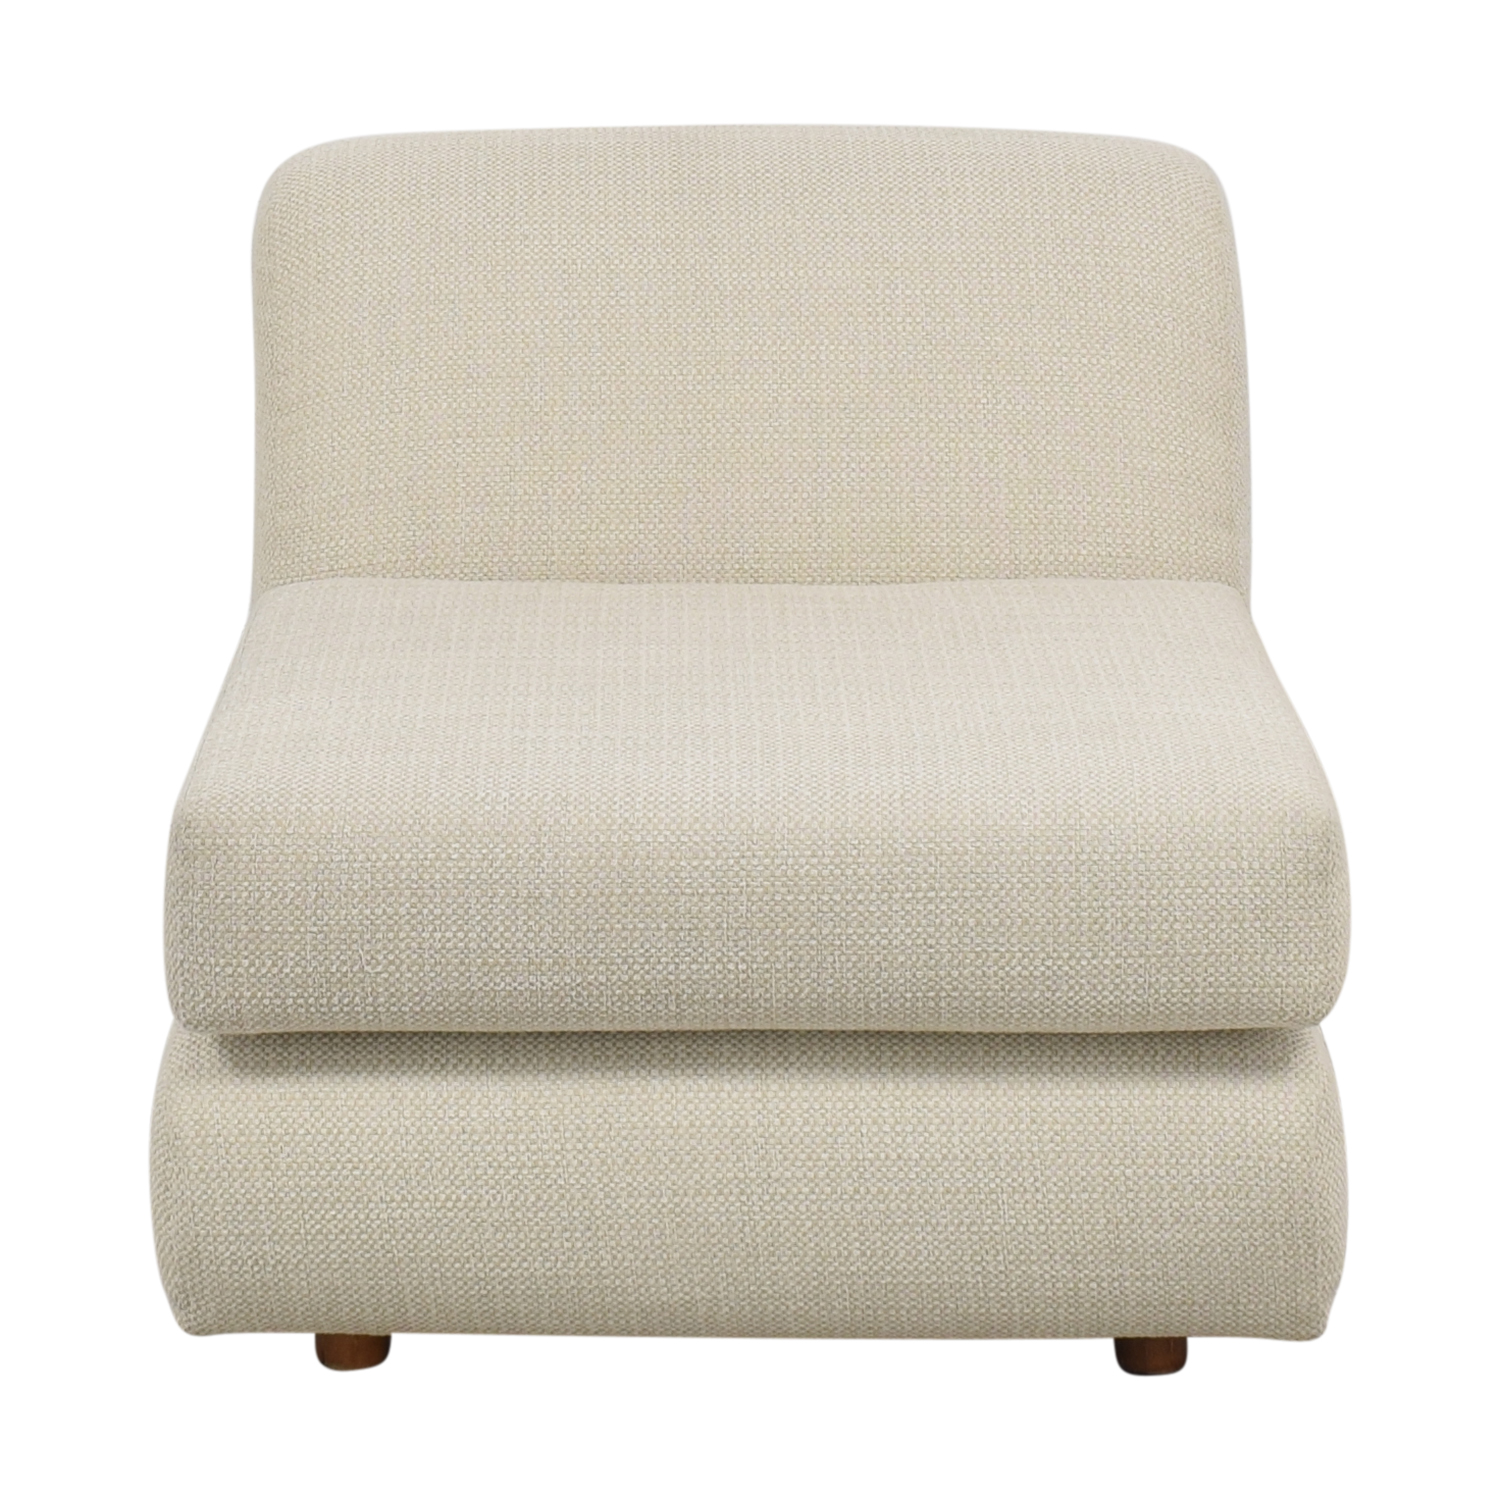 Steve Chase Furniture Steve Chase Slipper Chair ma